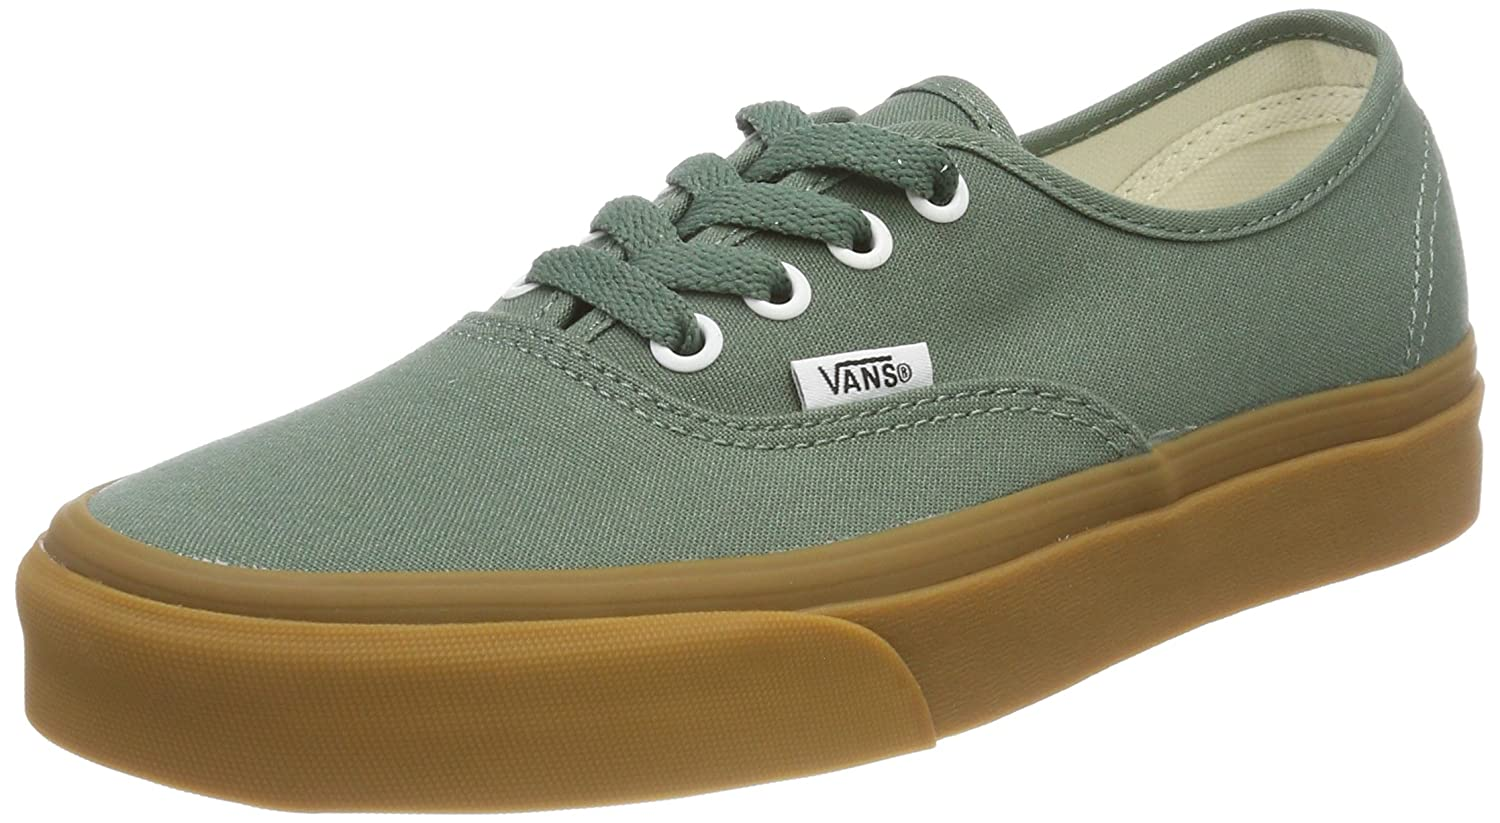 [バンズ] スニーカー Women's AUTHENTIC (Pig Suede) VN0A38EMU5O レディース B074HDTF46 Duck Green/Gum 5.5 M US Women / 4 M US Men 5.5 M US Women / 4 M US Men|Duck Green/Gum